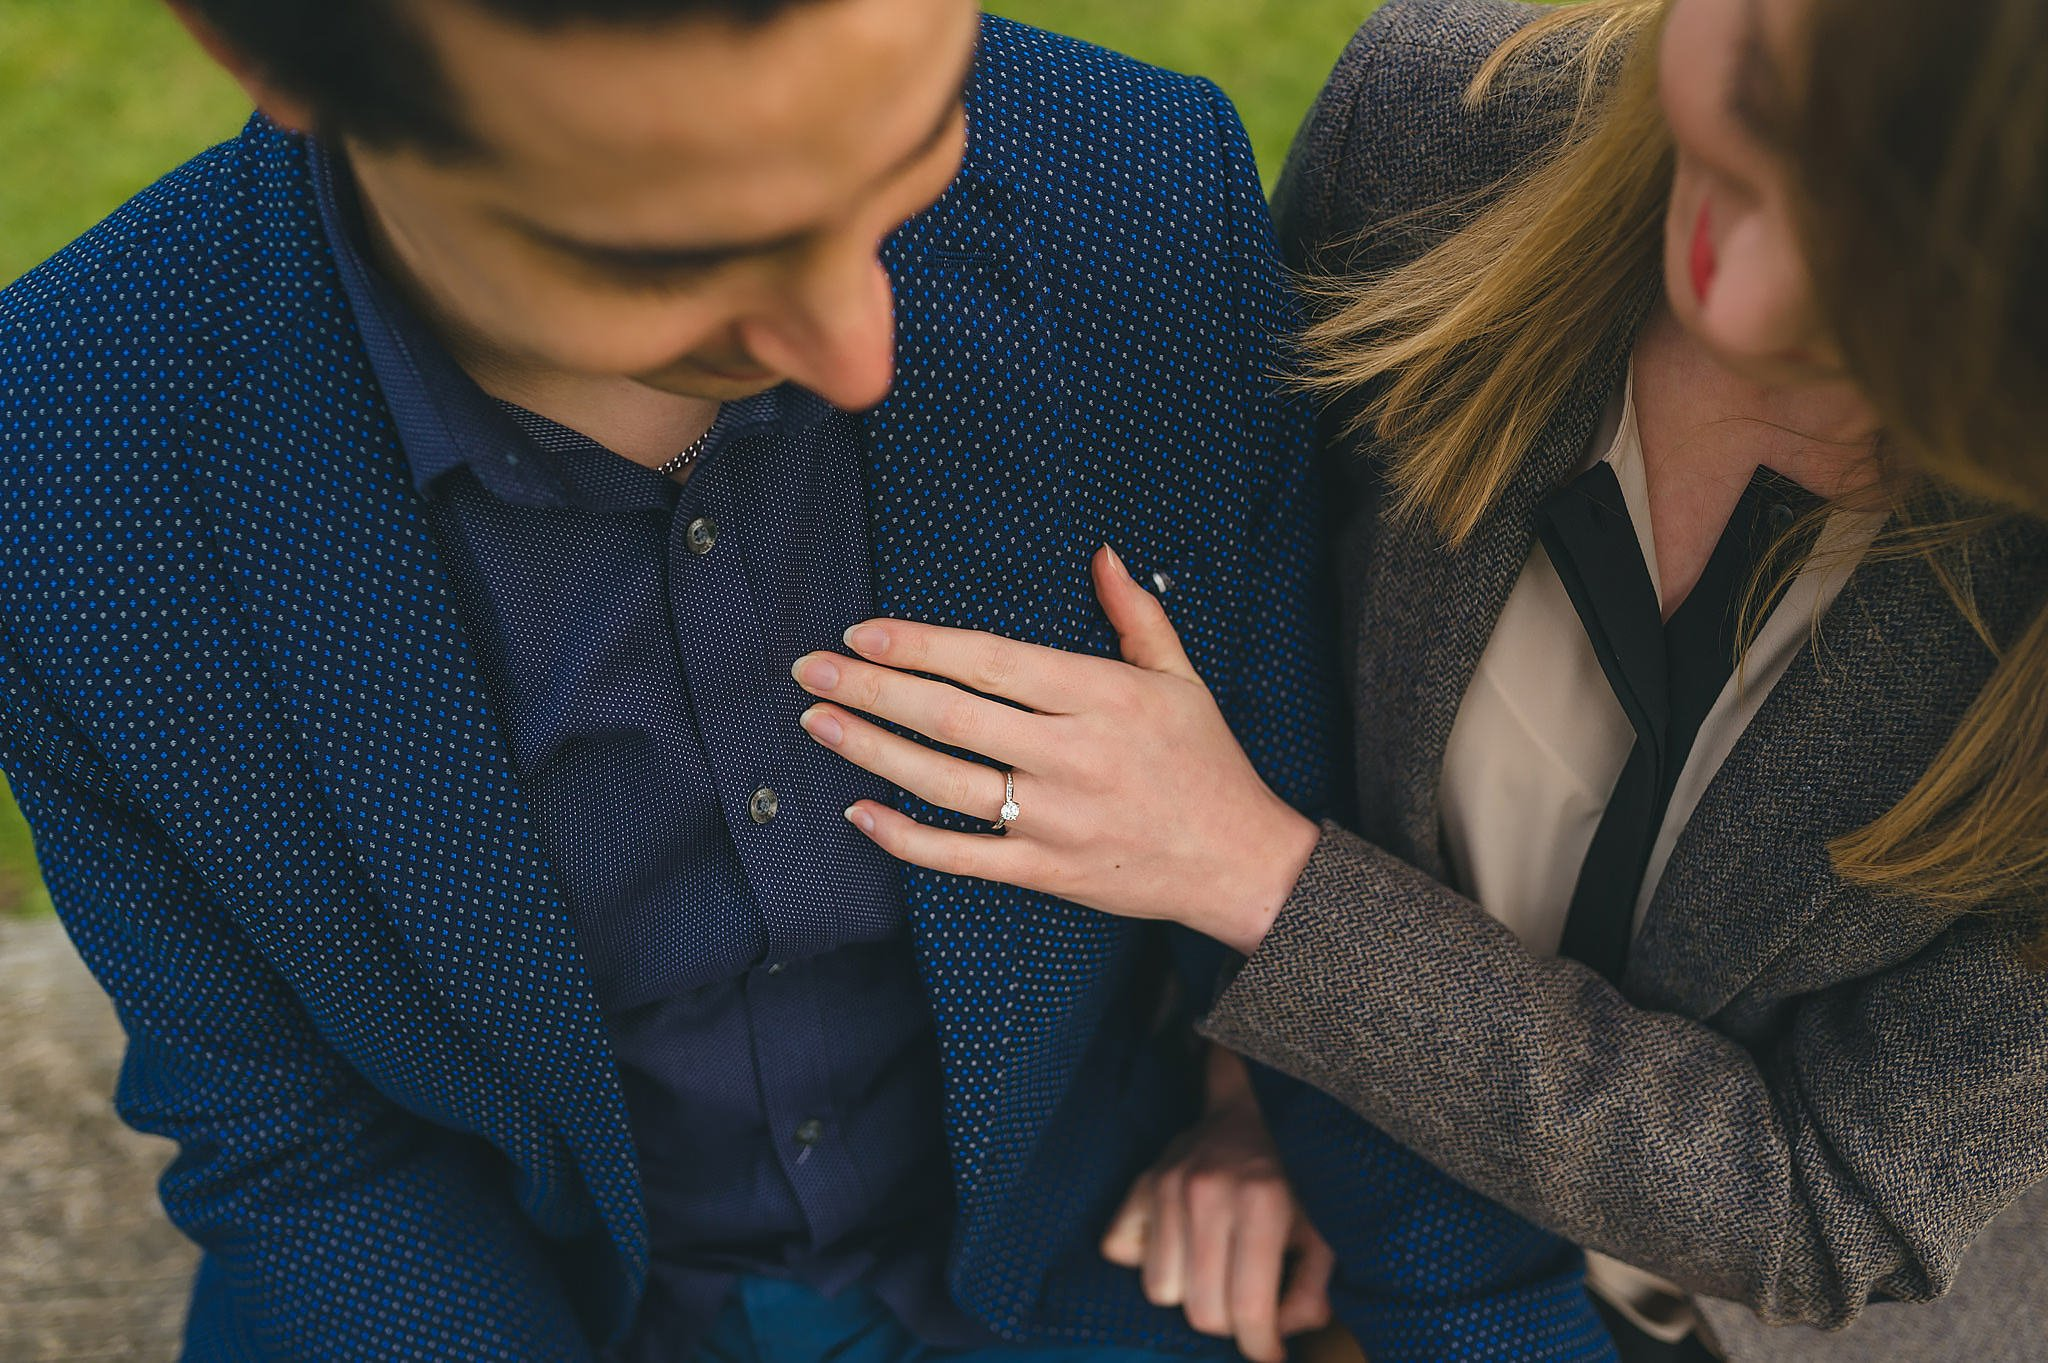 engagement photography worcester 3 - Chris + Malgosia | Engagement photography Worcester